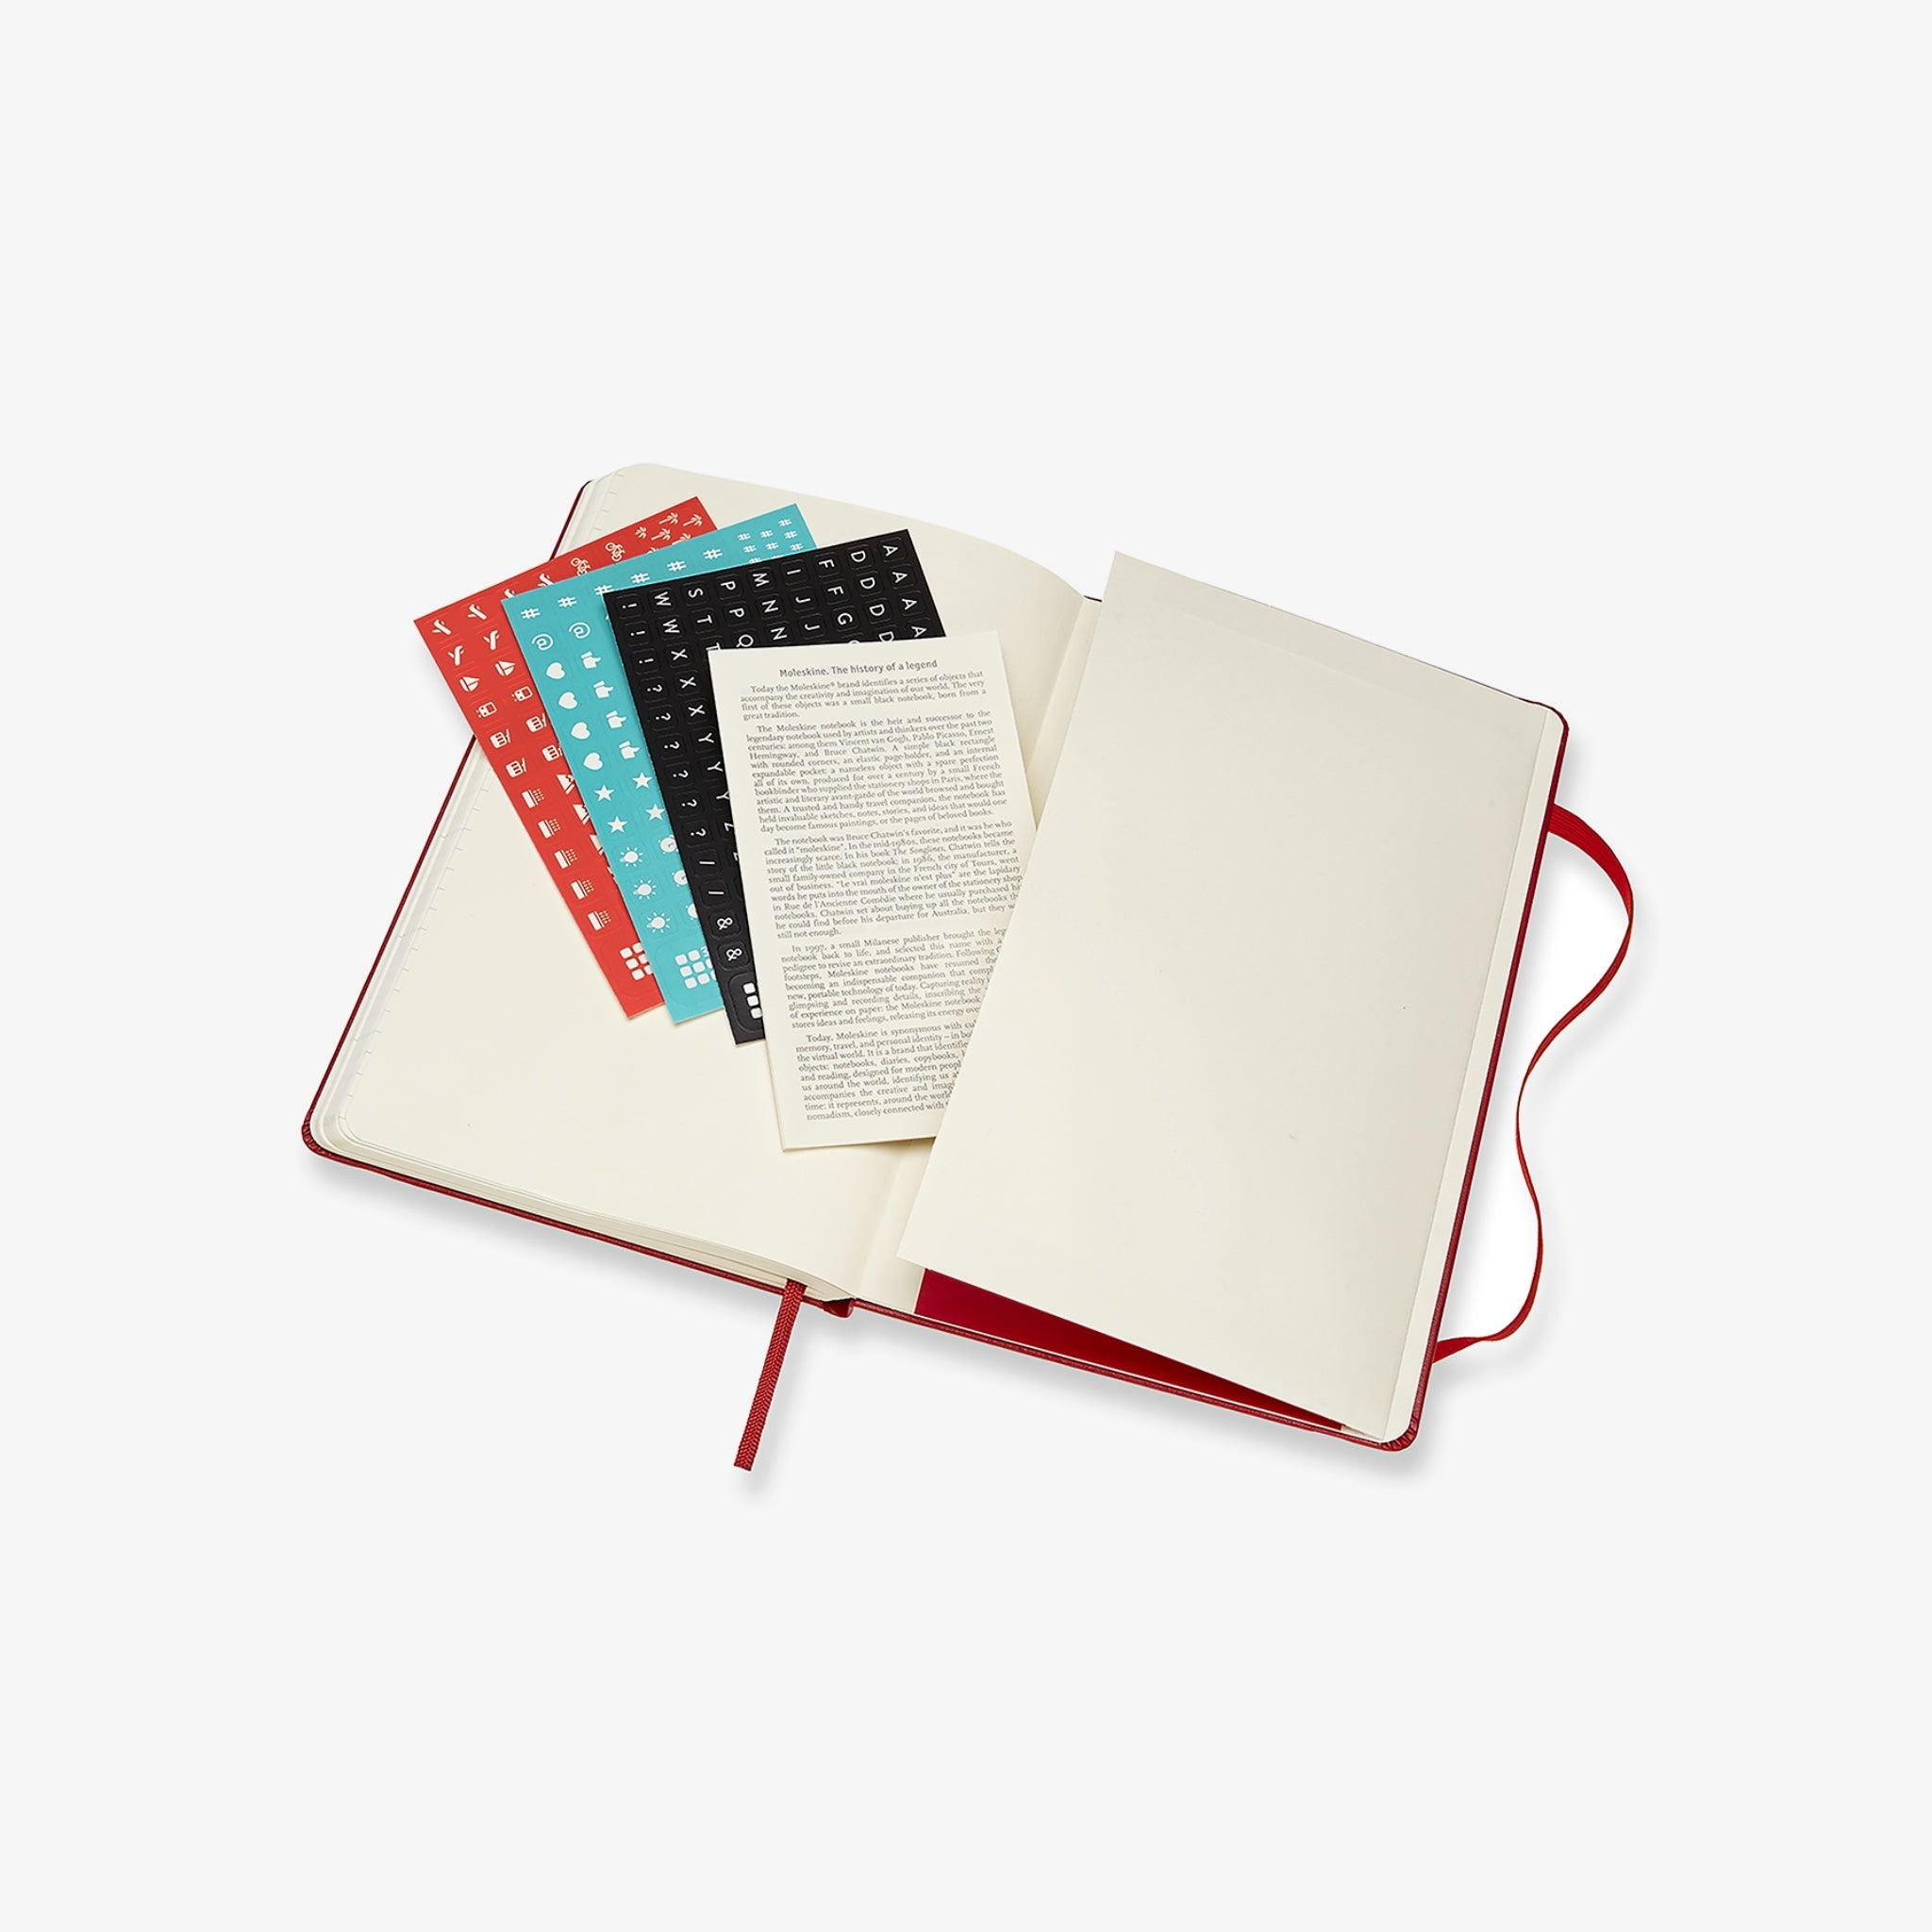 2021/22 Hard Cover Academic Diary - Scarlet Red